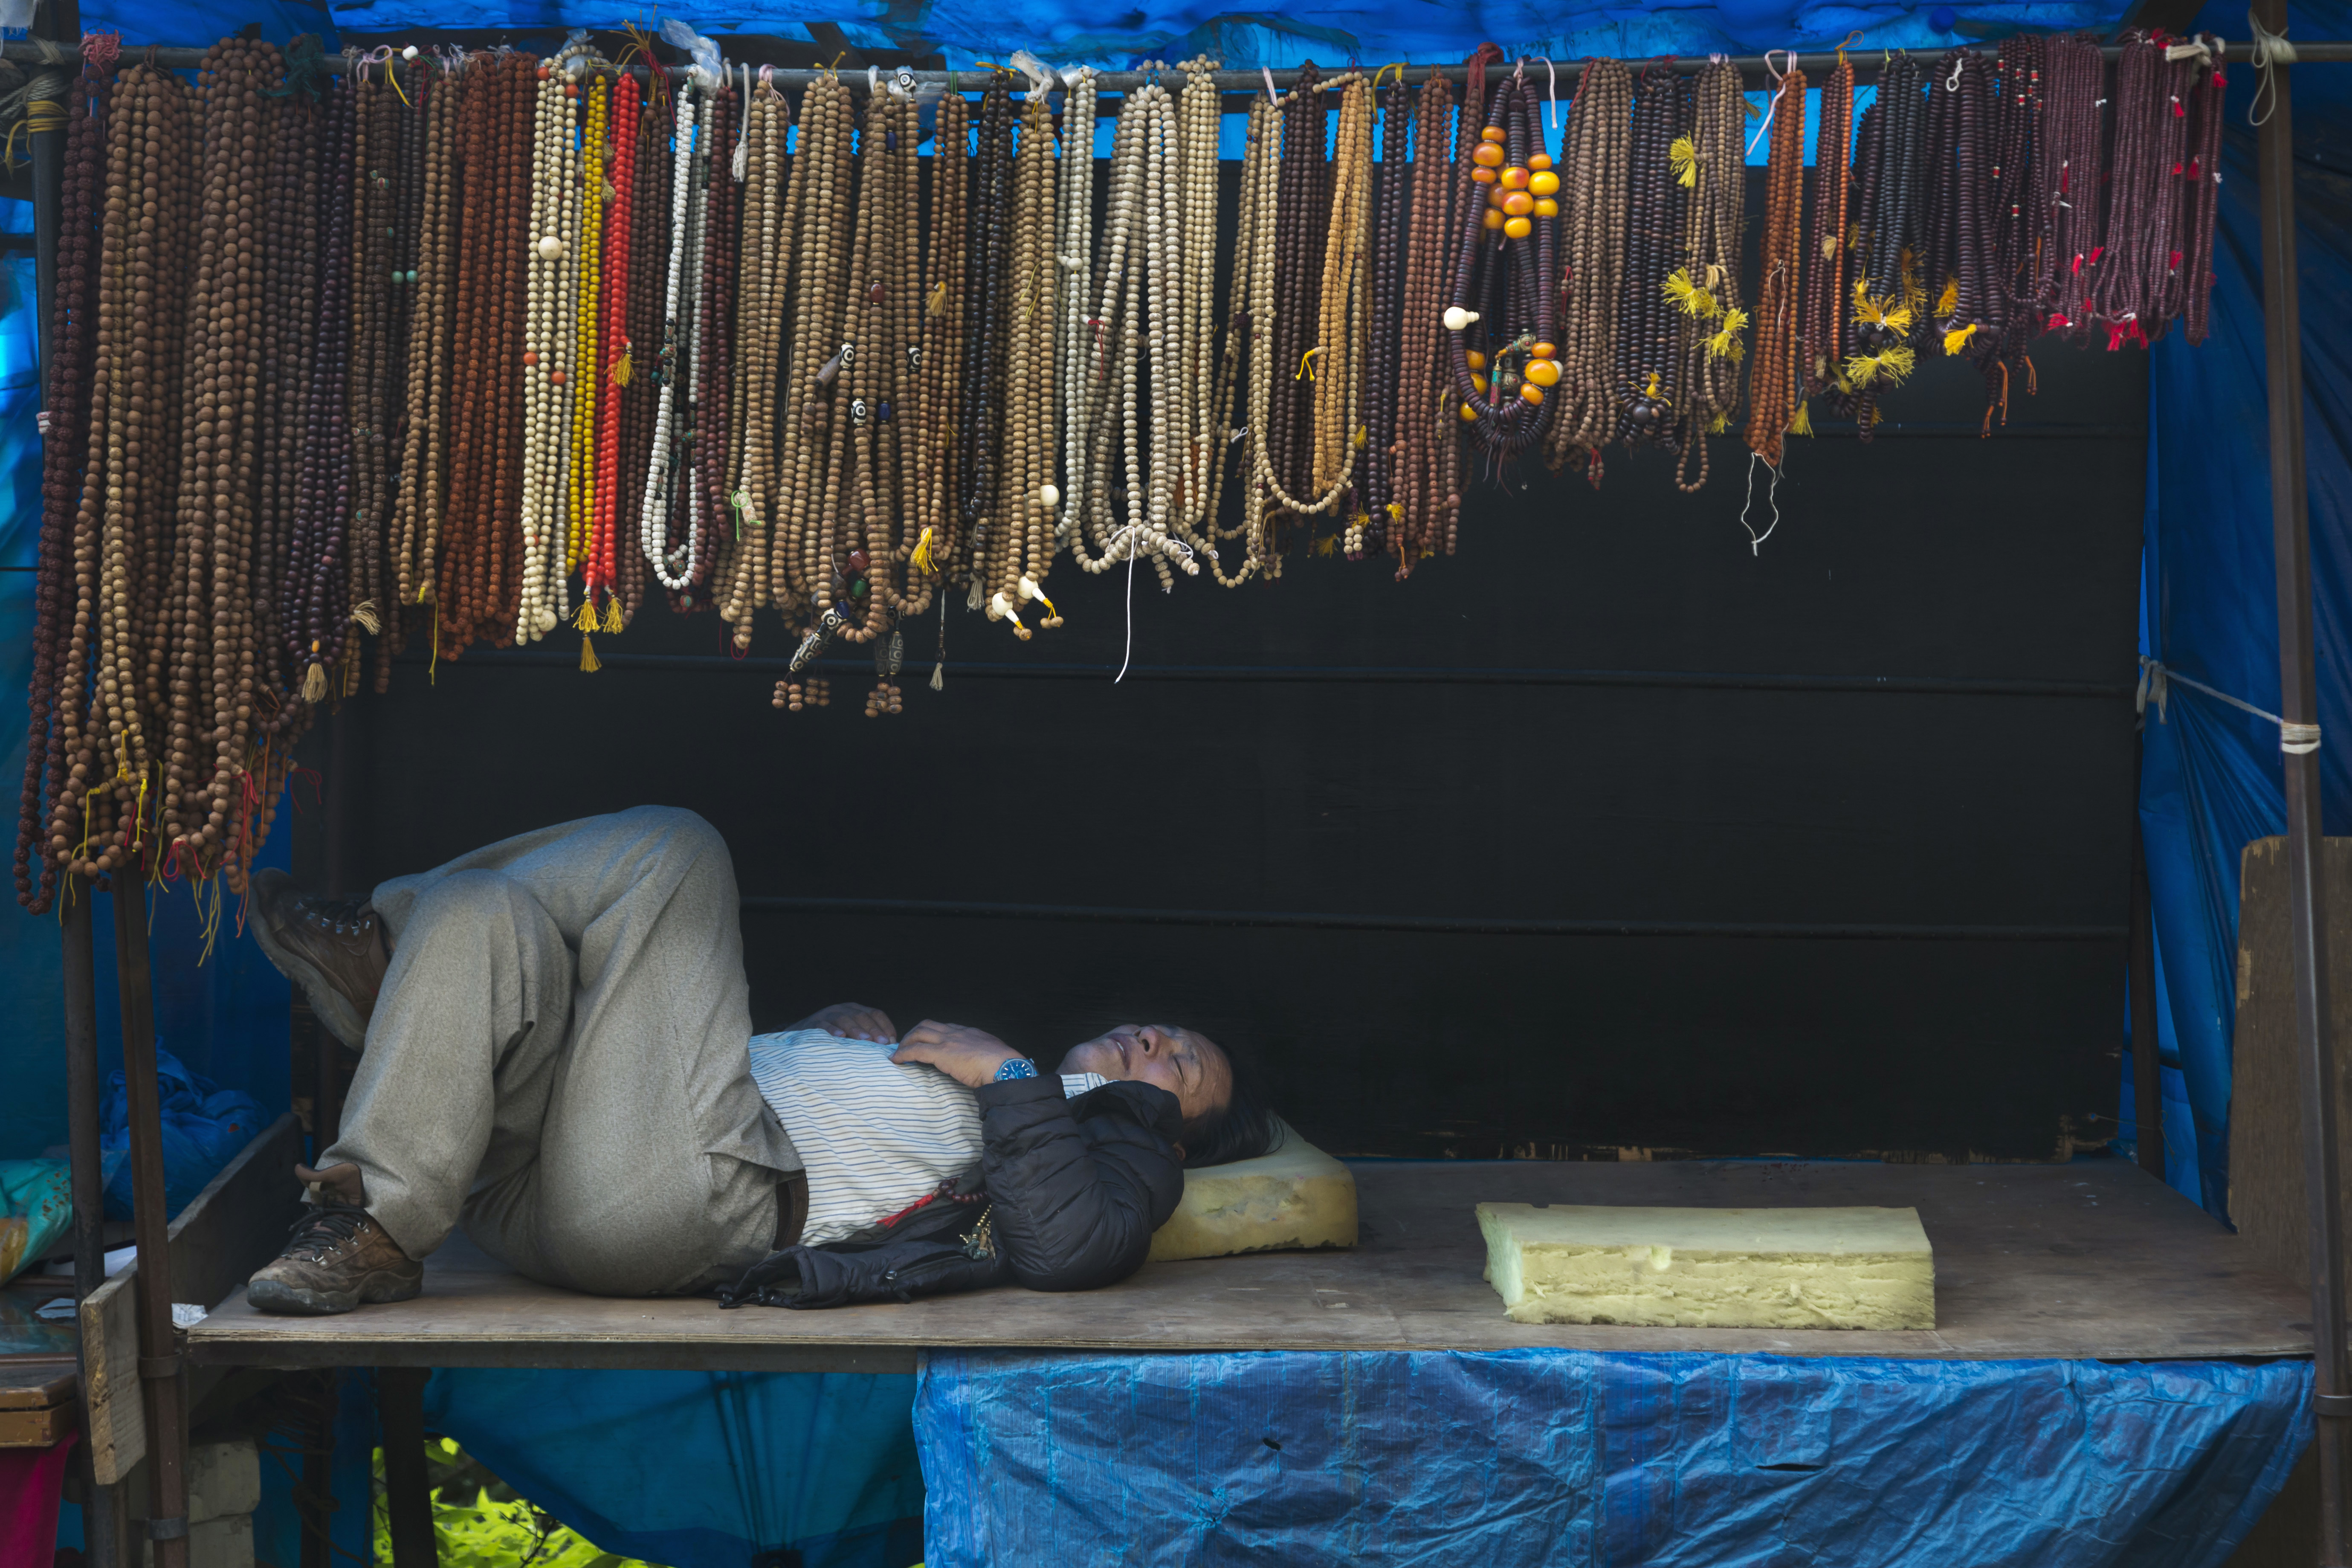 An exile Tibetan takes a nap in a roadside stall selling rosaries in Dharmsala, India - AP